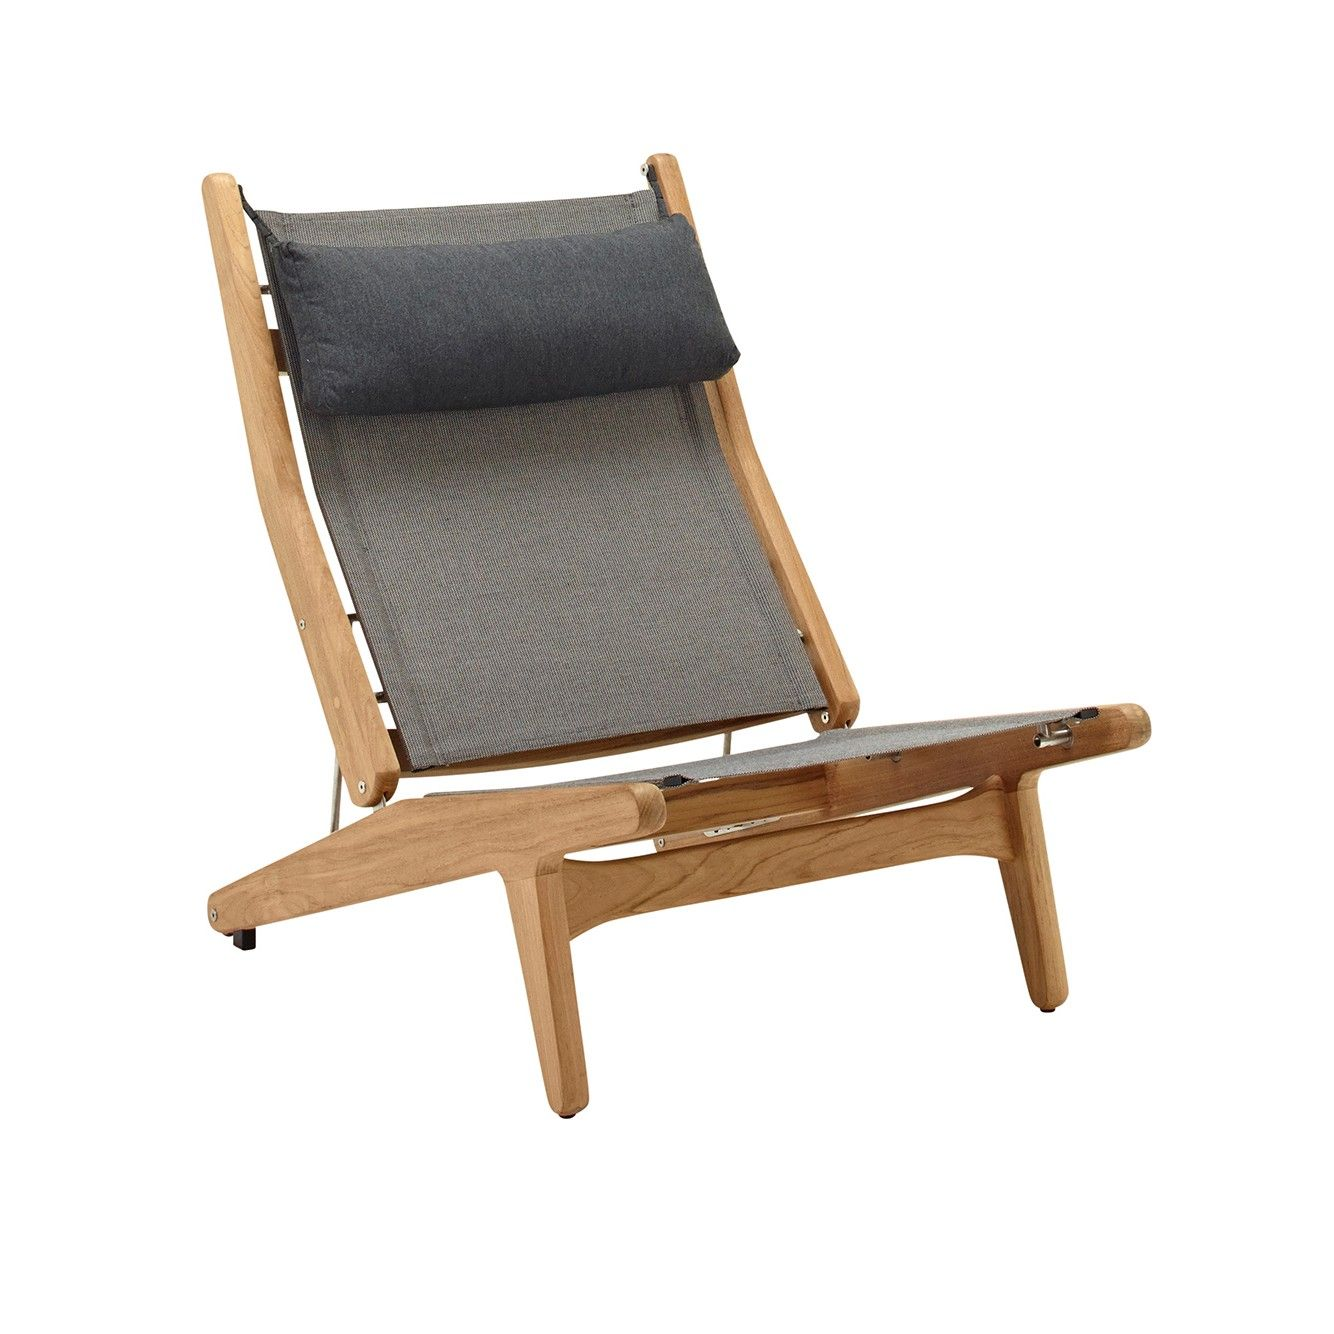 Jdv Bay GlosterTeck Inclinable Décoration Fauteuil LjUMVpGzSq